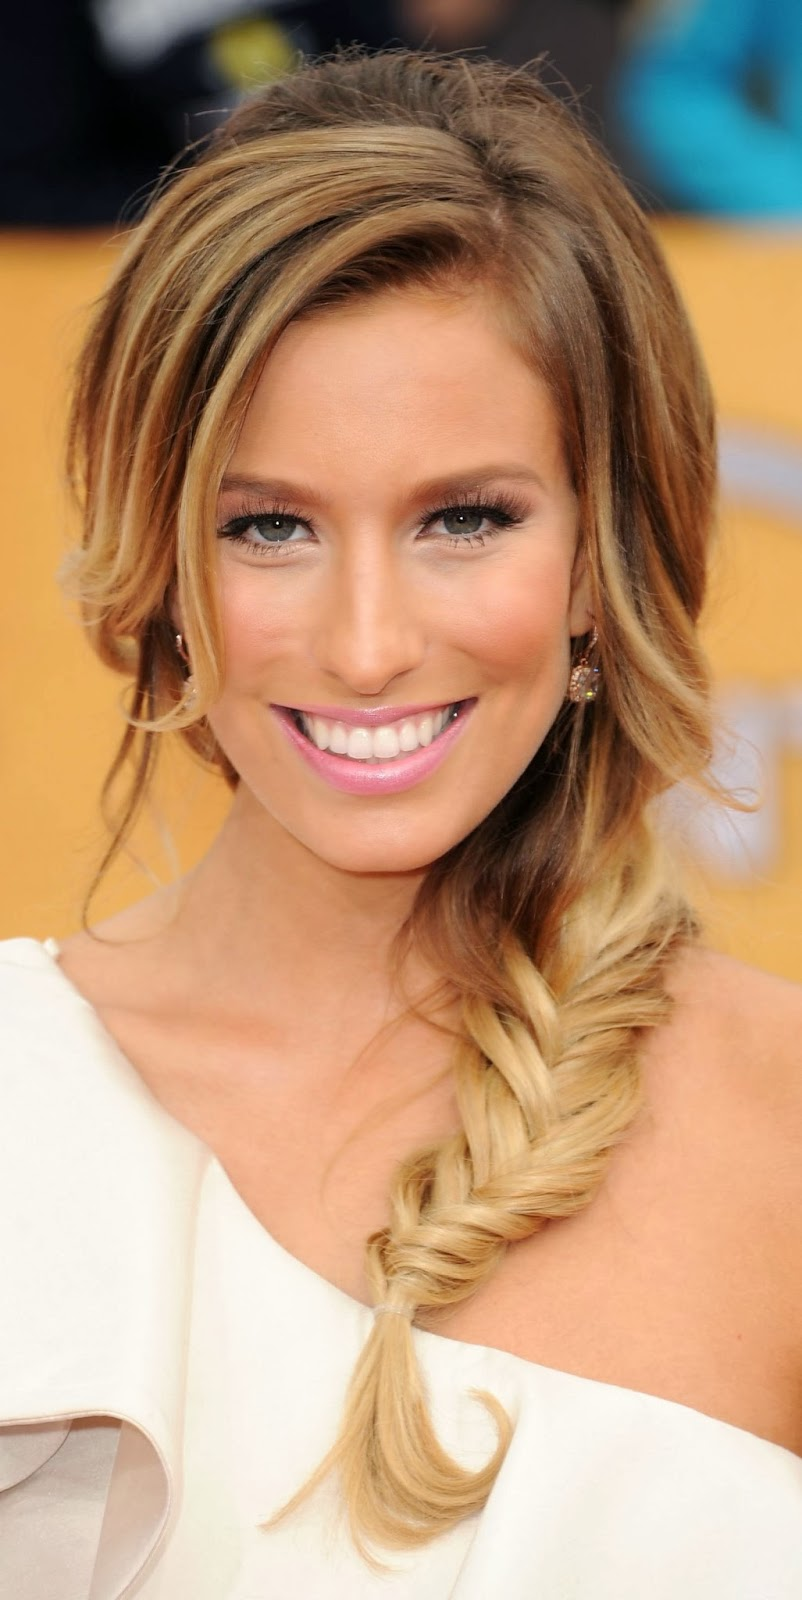 Girl Long Hair Hairstyles 2014 Popular Hairstyle Mode